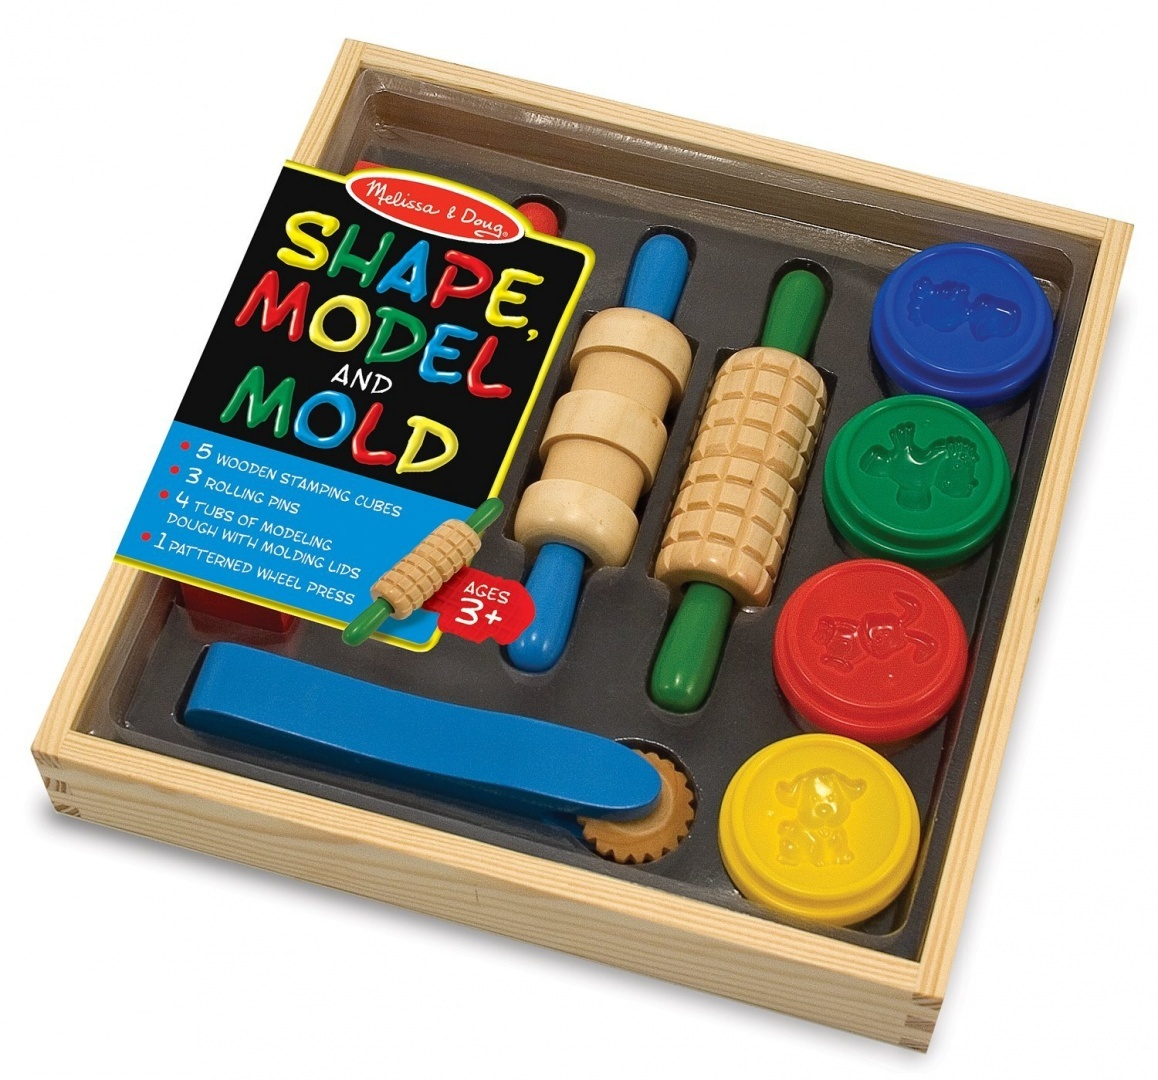 Melissa & Doug Shape, Model, and Mould Clay Activity Set - 4 Tubs of  Modelling Dough and Tools